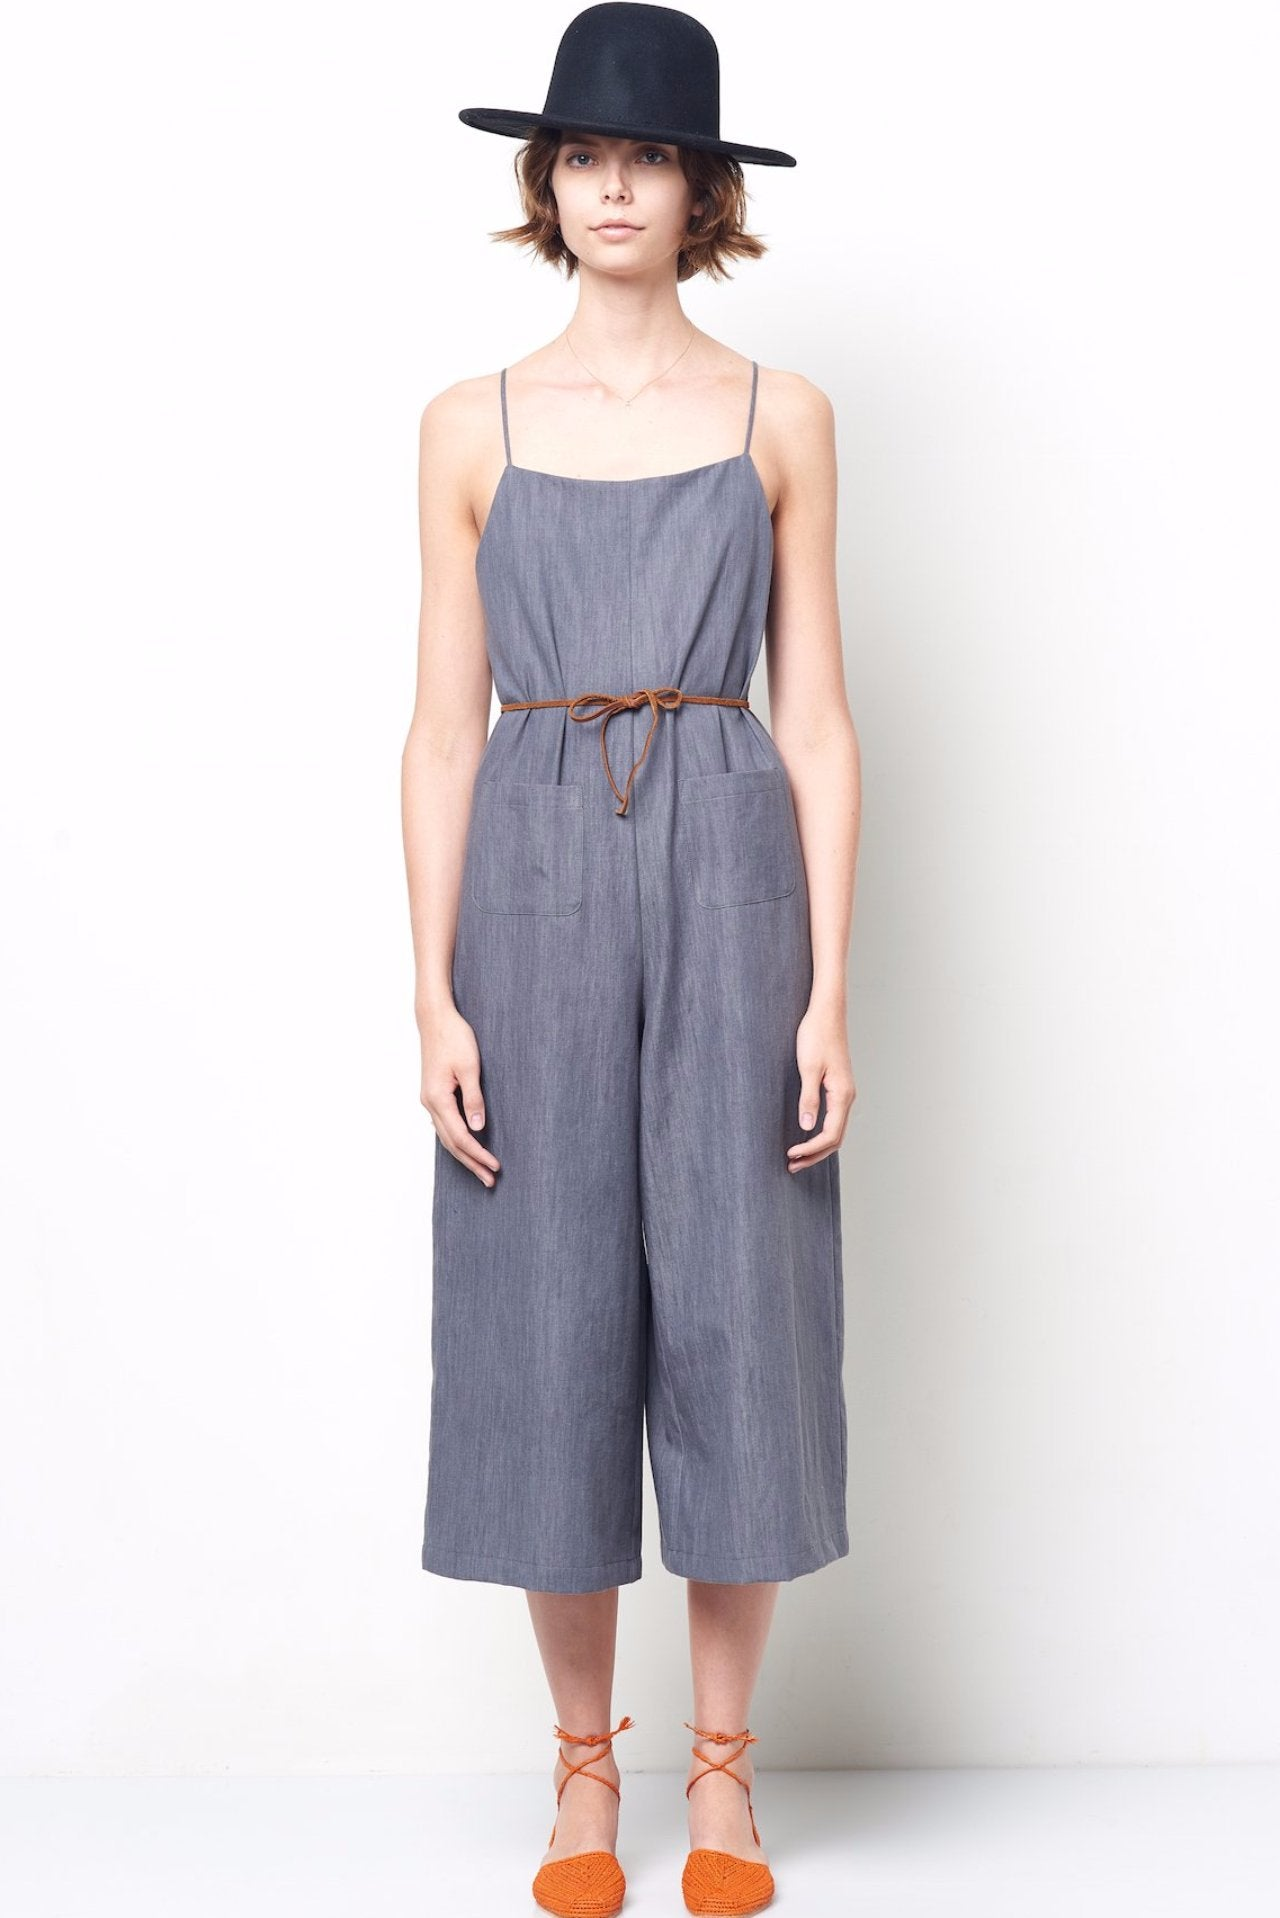 dea01e29d MARGO Light Denim Spaghetti Strap Wide Leg Jumpsuit – CLC by Corey Lynn  Calter